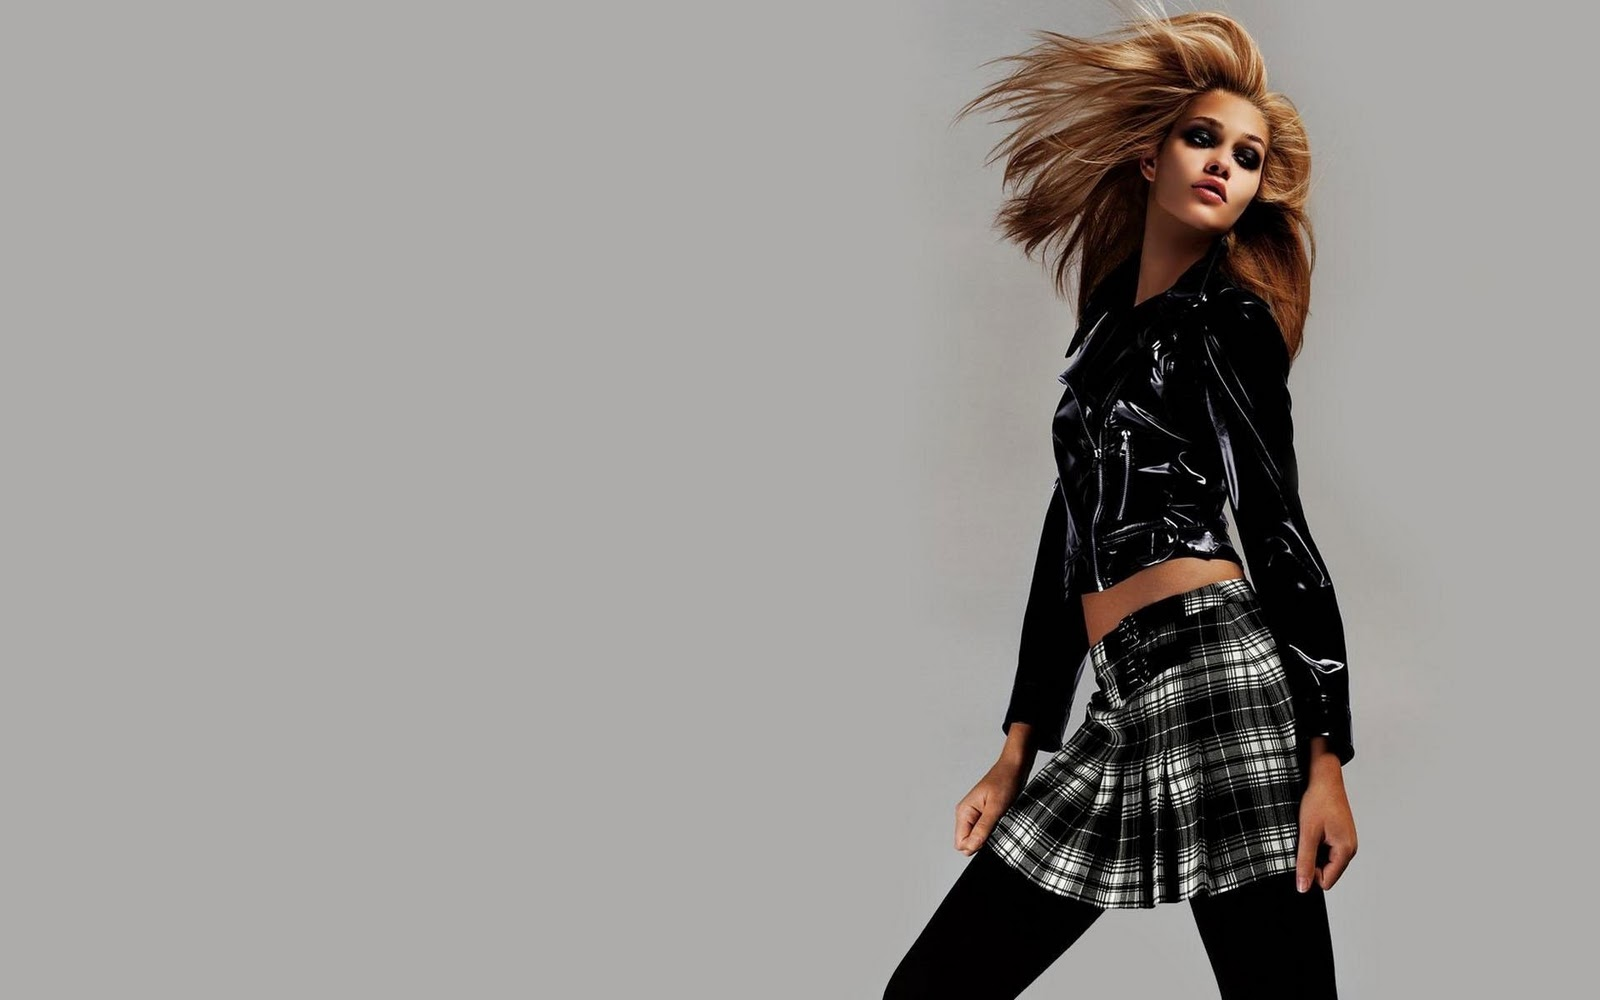 2011 News HD Fashion Wallpapers And Model